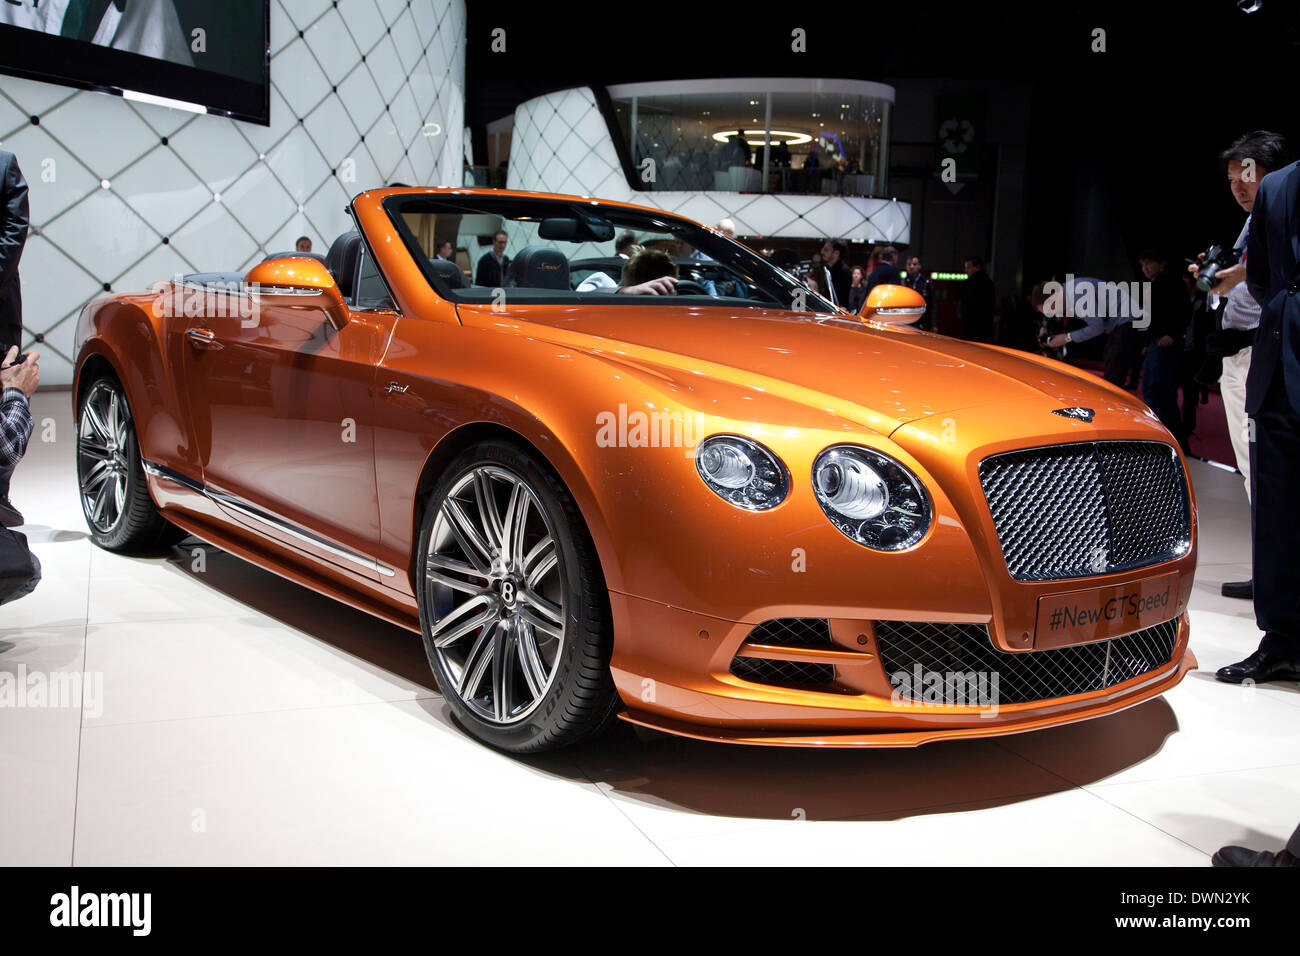 Bentley neue Continental GT Speed auf der 84. Genfer Internationalen Automobilausstellung 2014. Stockbild